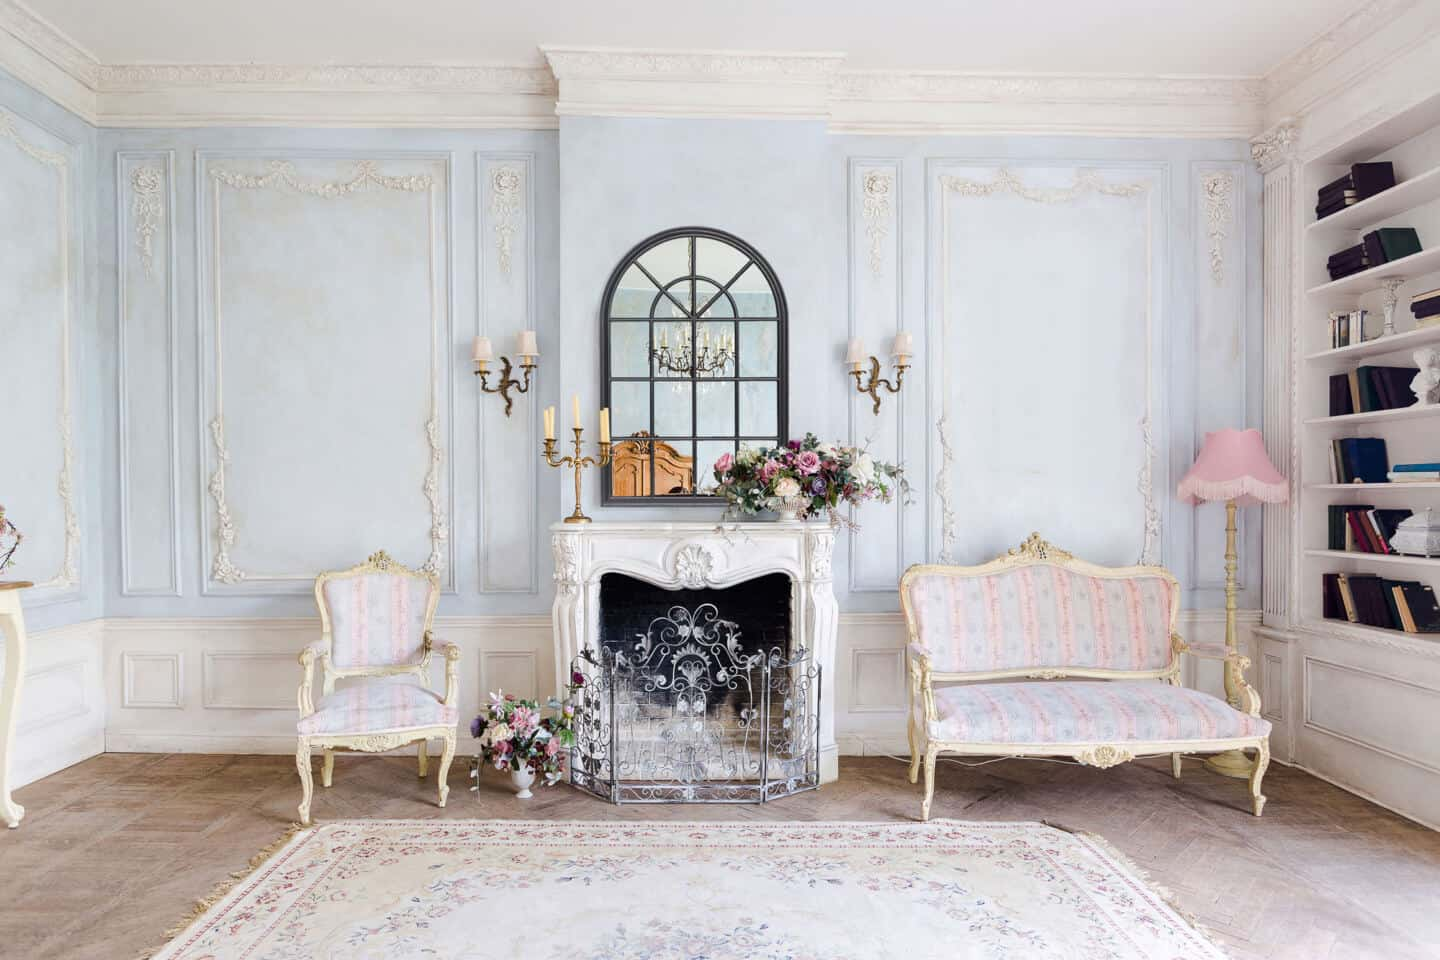 8 ways to use mirrors in your interiors. Casa Chic Boutique window mirror in  black hung above the fireplace in a french chateau style interior.